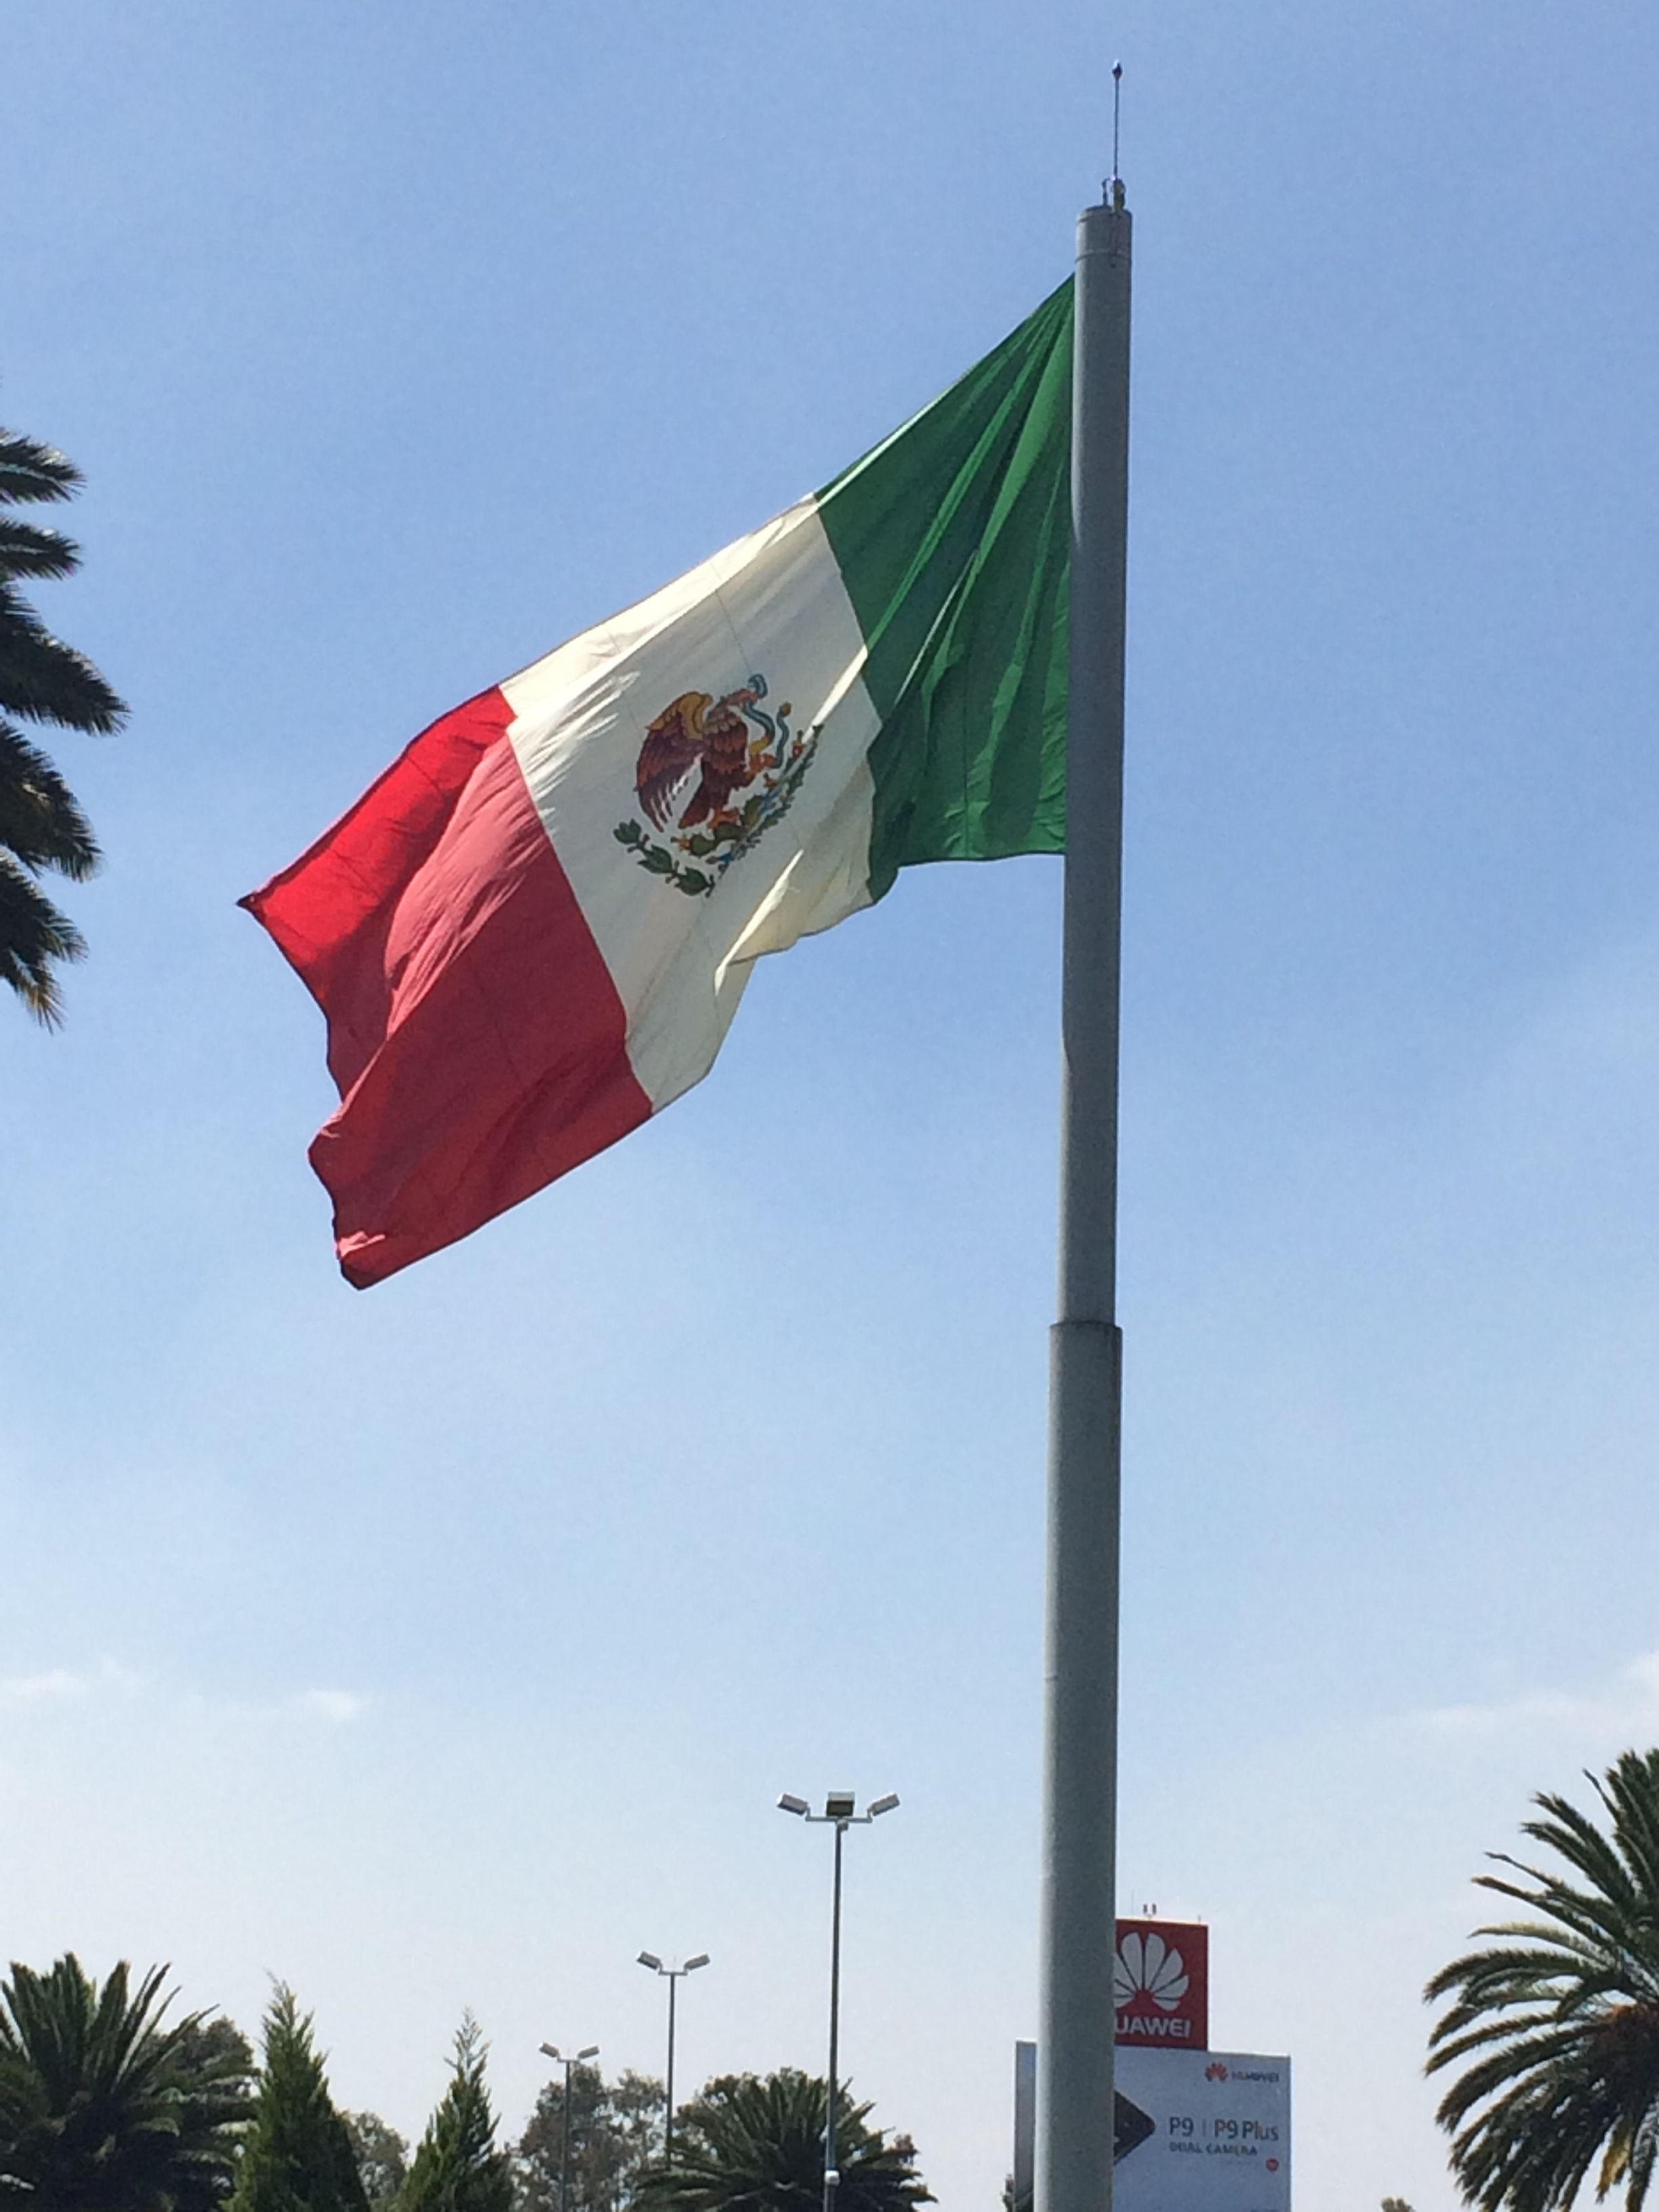 The Flag Of Los Estados Unidos Mexicanos Outside Terminal 2 At Benito Juarez International Airport In Mexico City Mexicocity Mexico Mexico City Mexico City